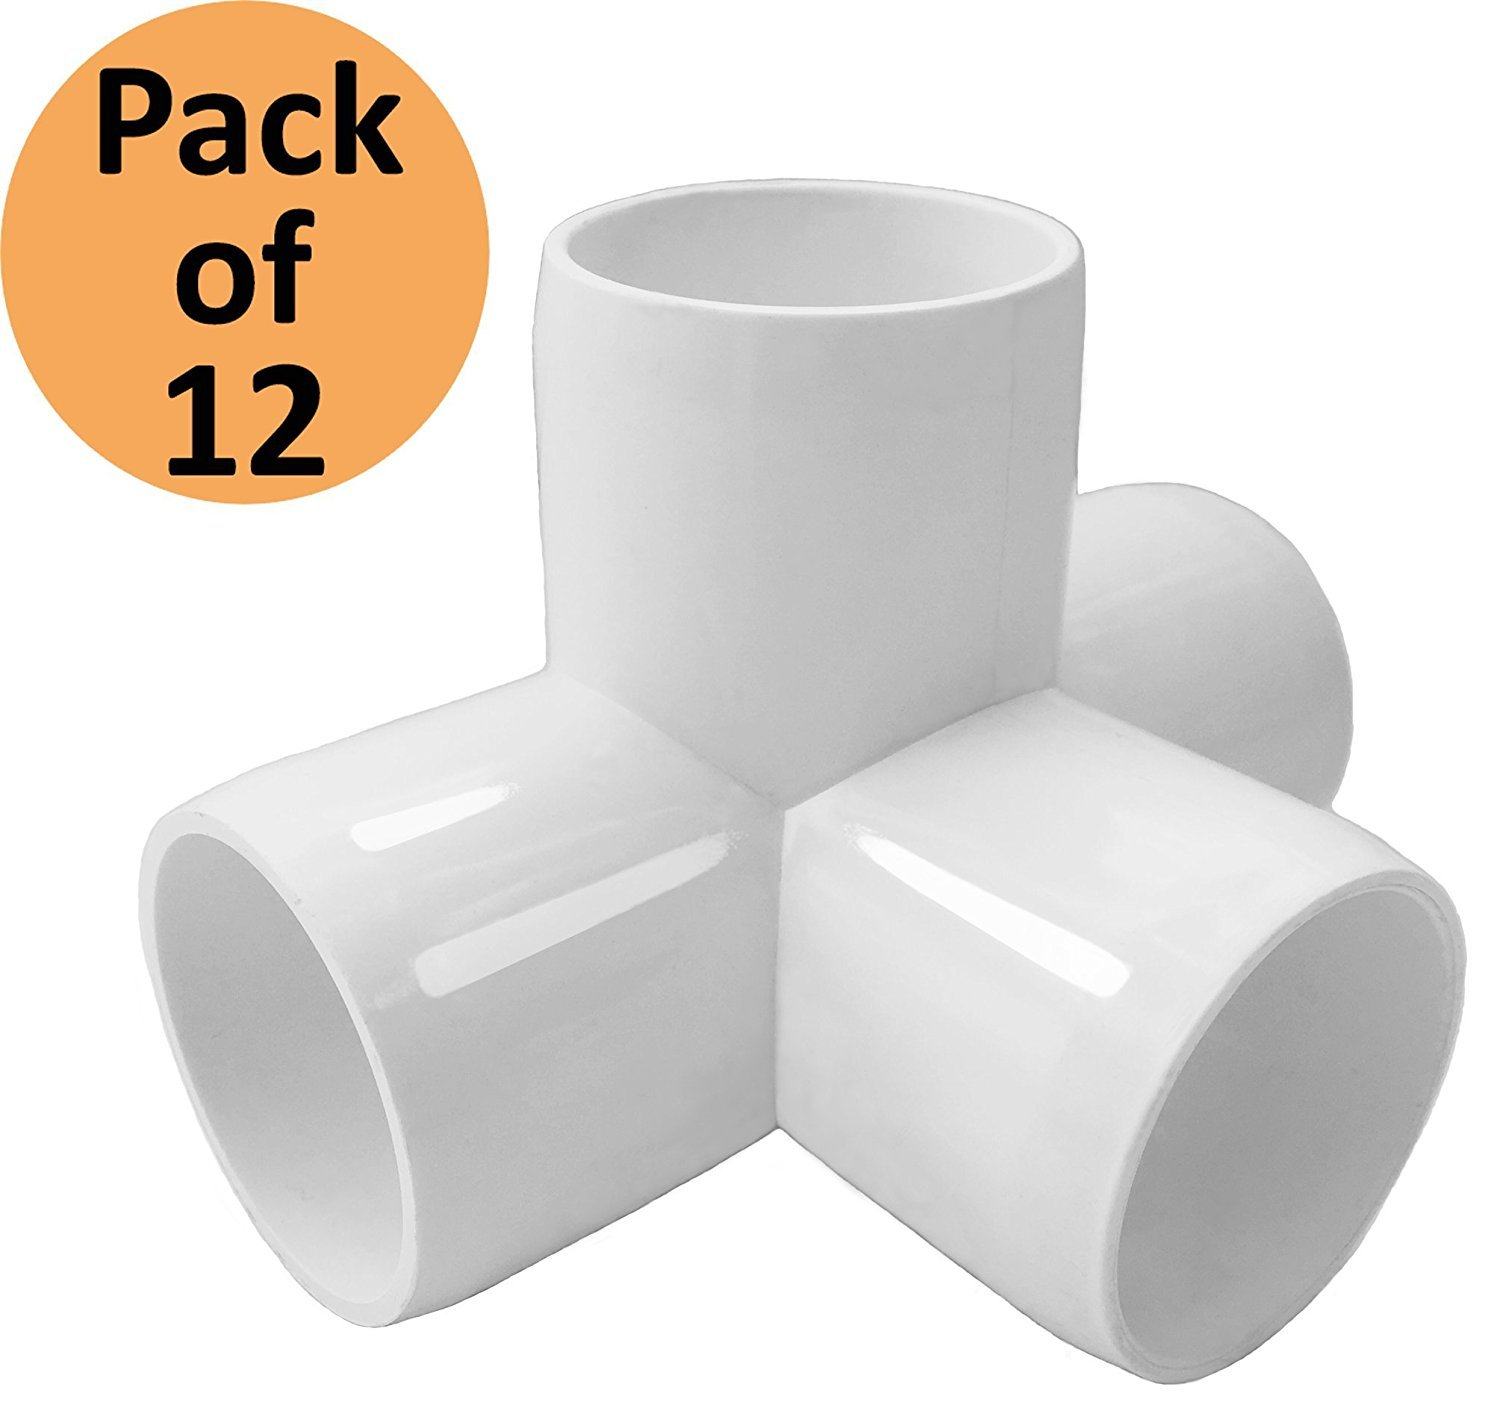 New 4 Way 1/2 in Tee PVC Fitting Elbow - Build Heavy Duty PVC Furniture - PVC Half inch Elbow Fittings [Pack of 12]